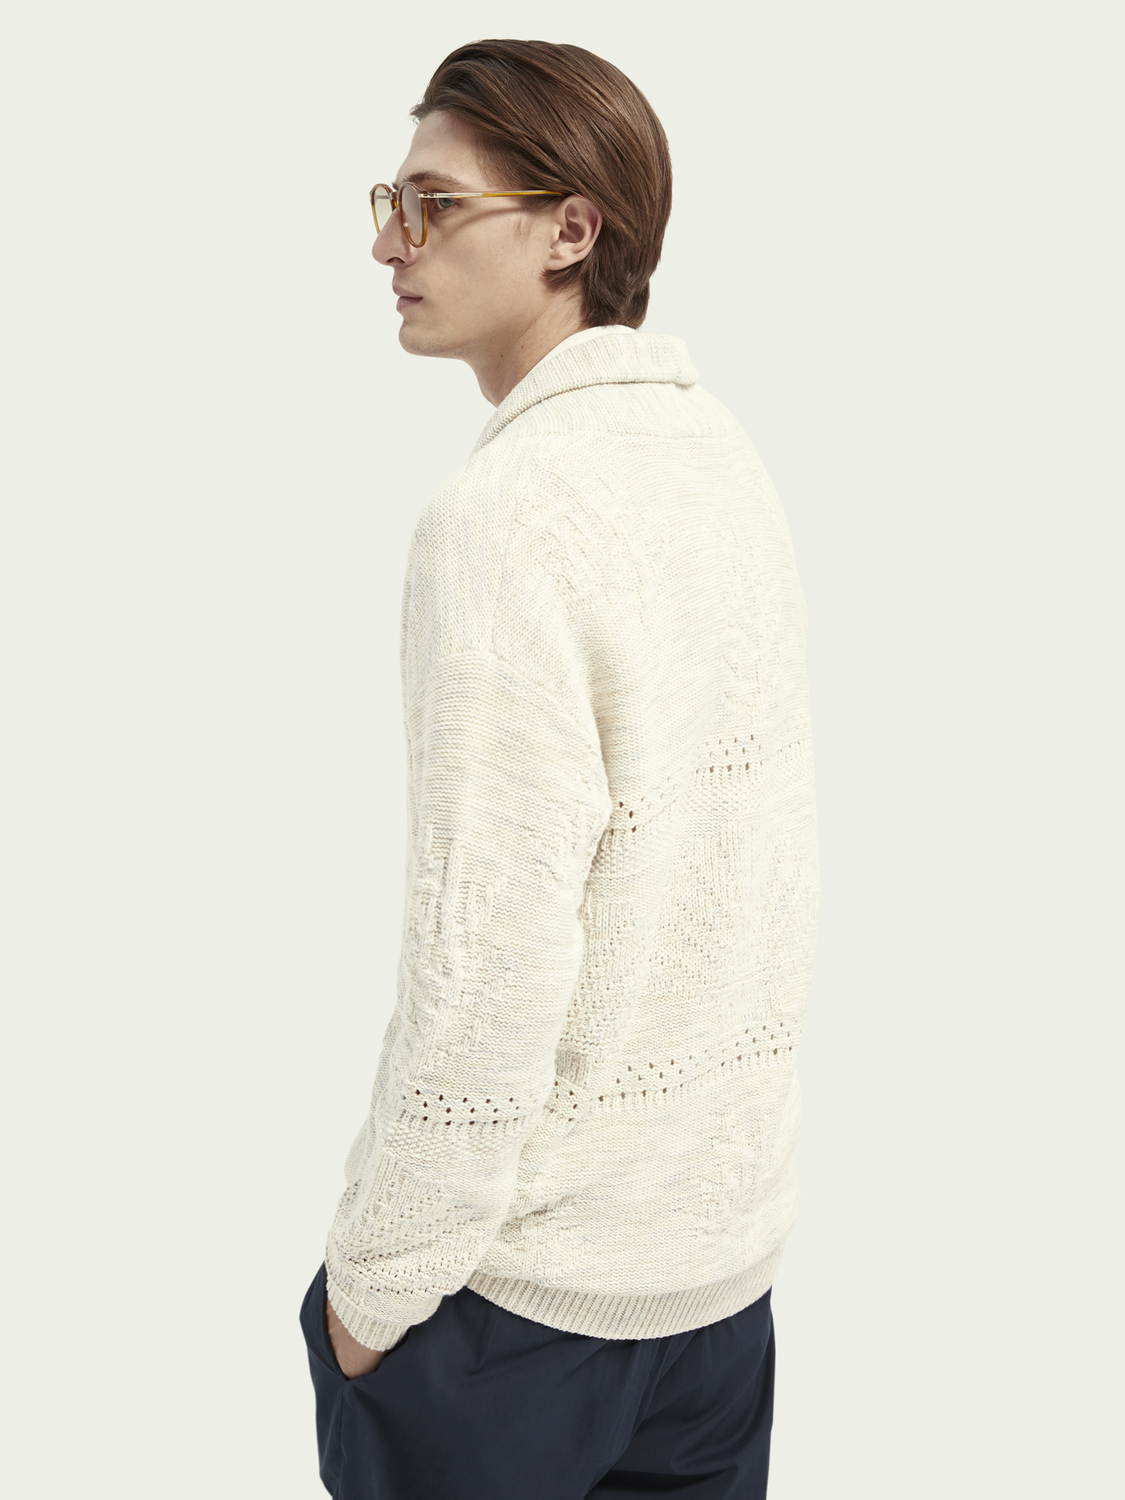 Men Structured relaxed jacquard knit cardigan